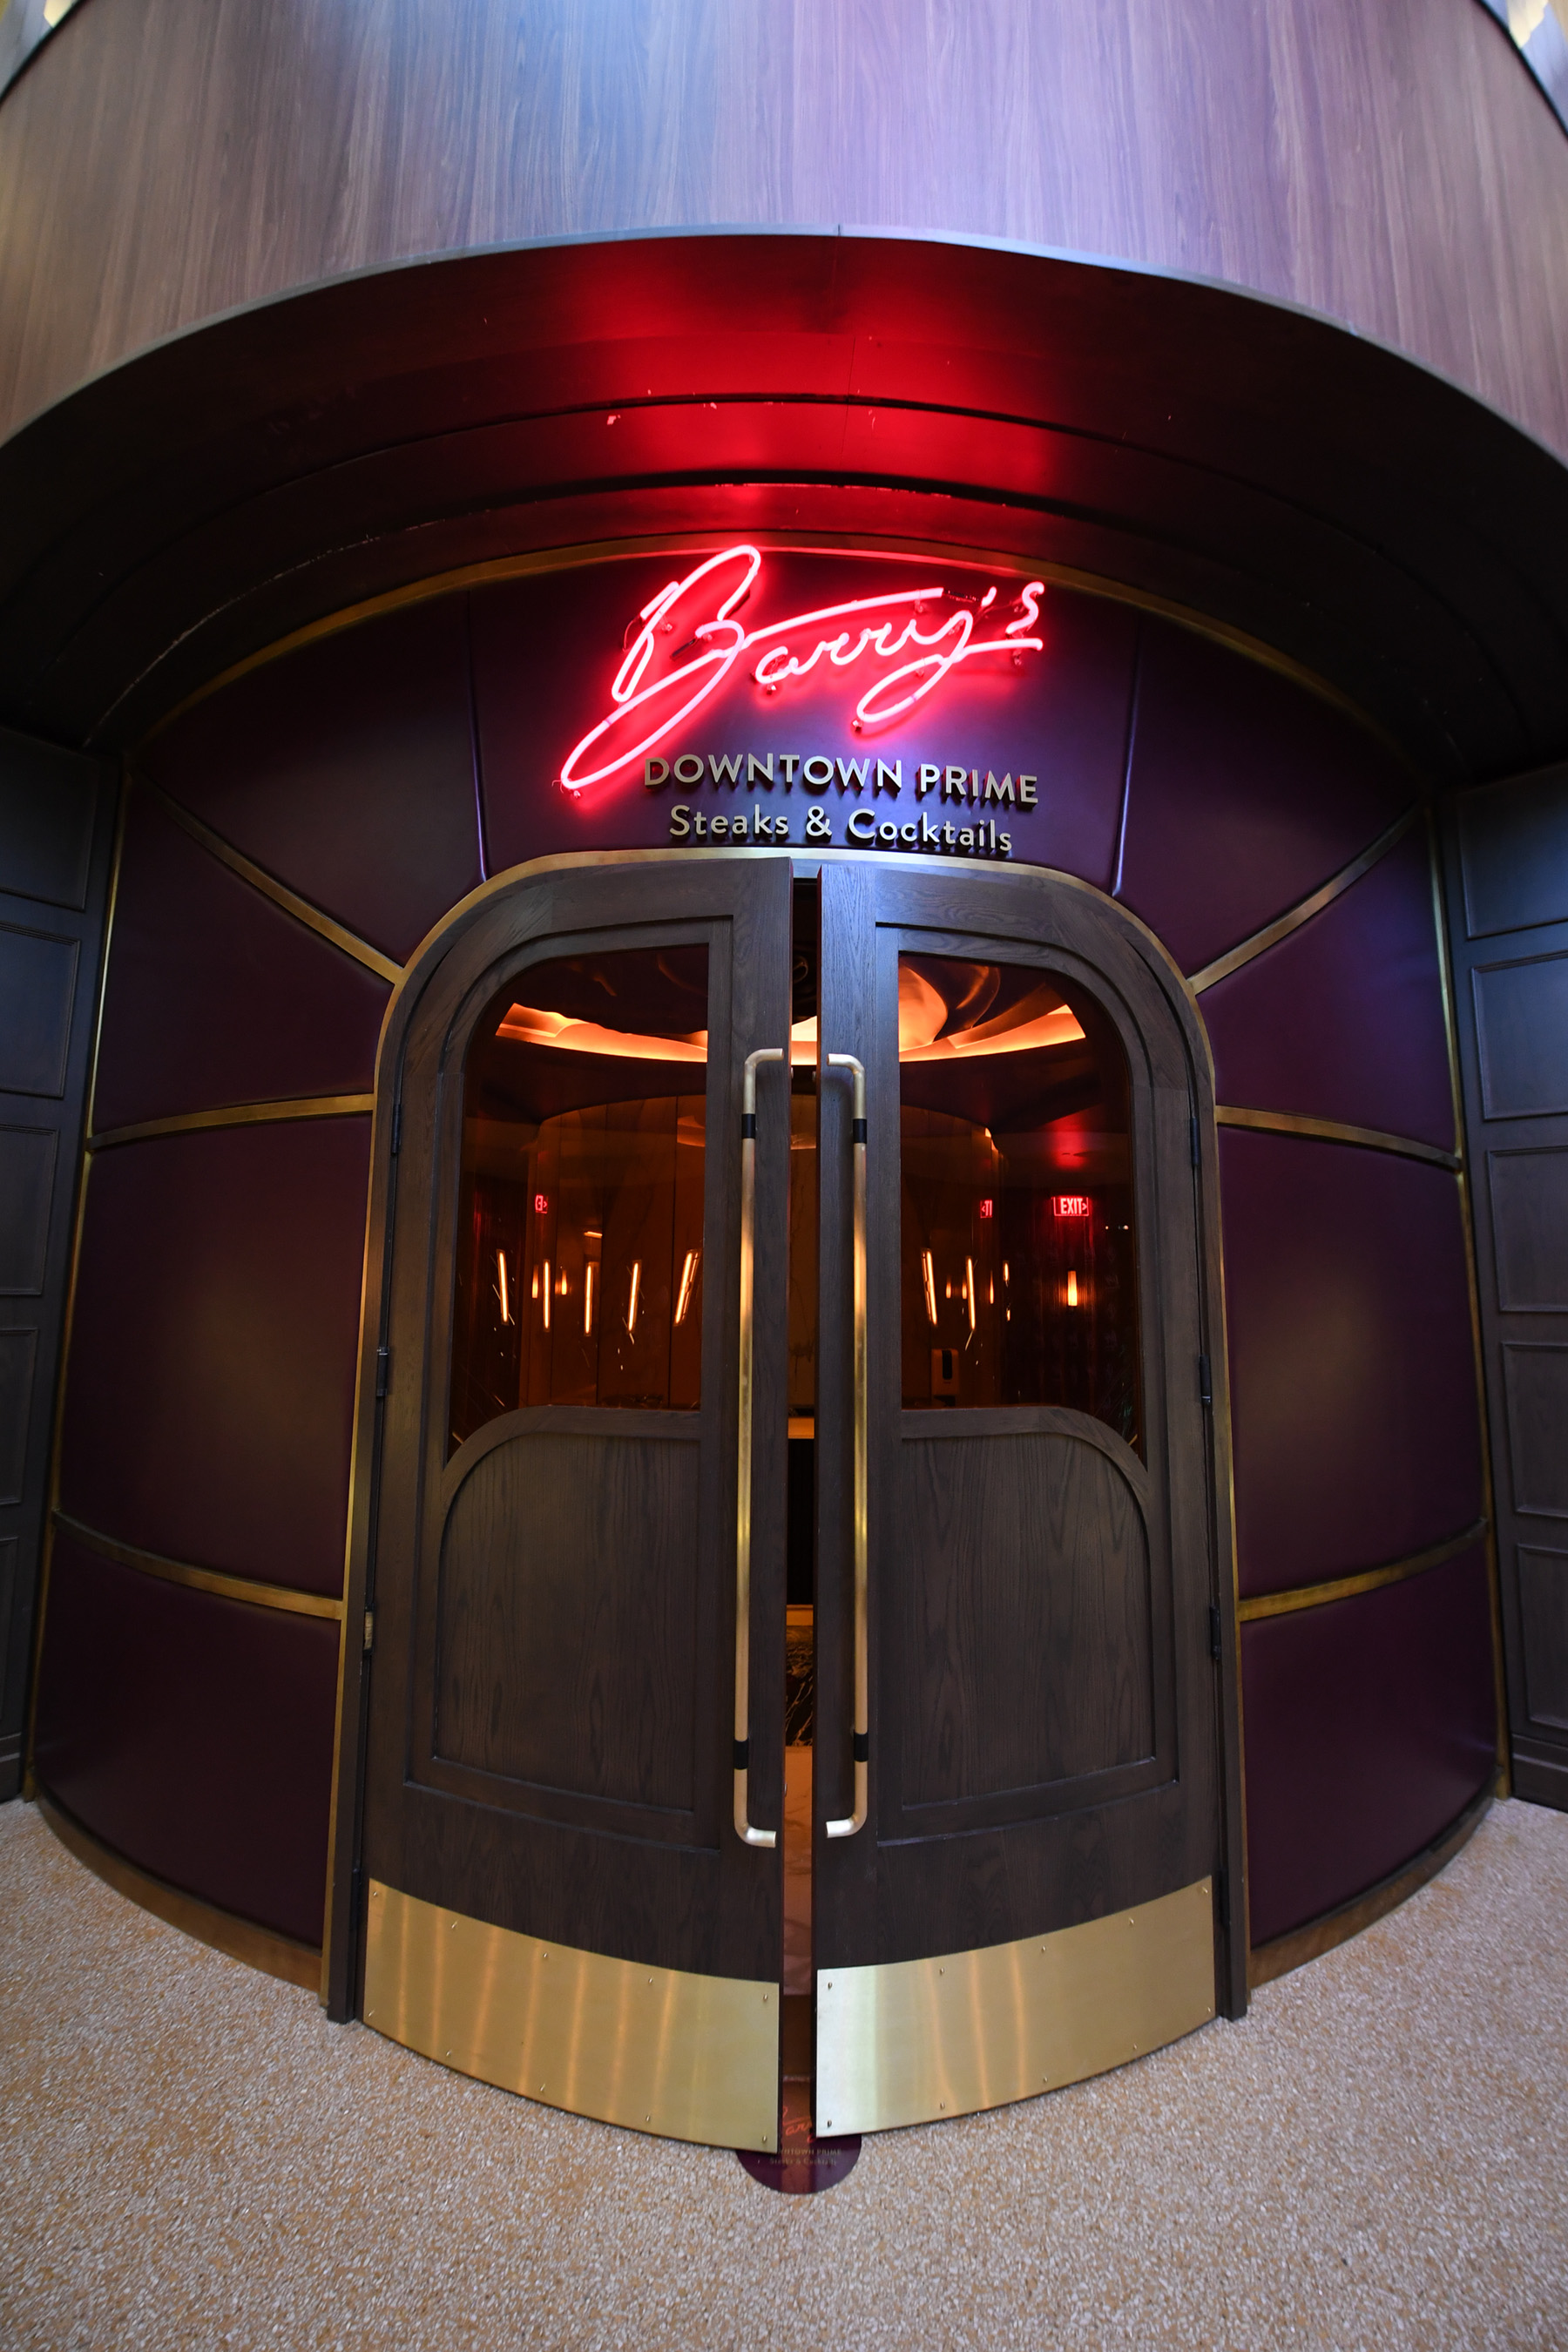 Glitz, glam and throwback vibes define Circa's steakhouse - Barry's Downtown Prime - from Vegas' own Chef Barry S. Dakake and his team at Make It Happen Hospitality.